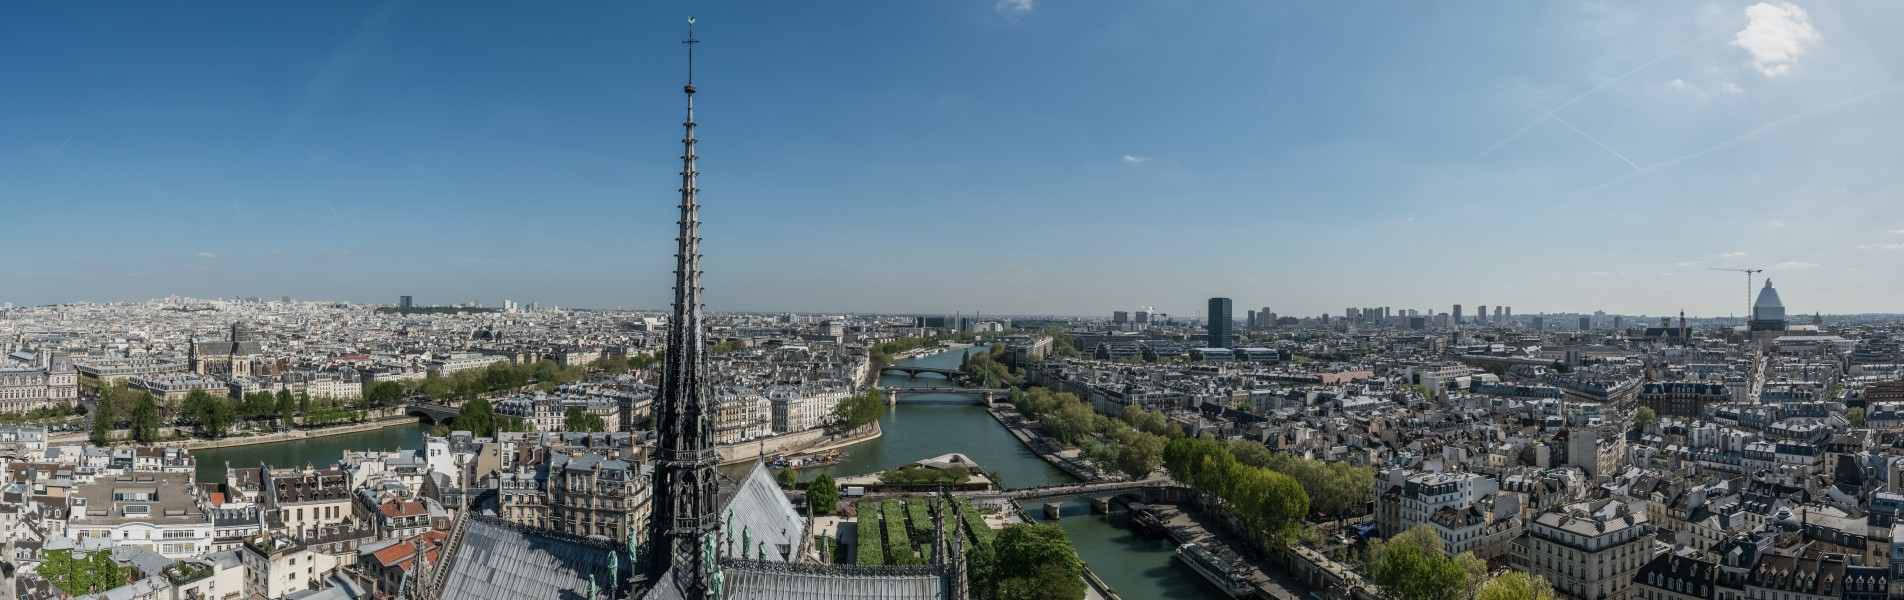 View of East Central Paris as seen from the Towers of Notre-Dame 20140409 1